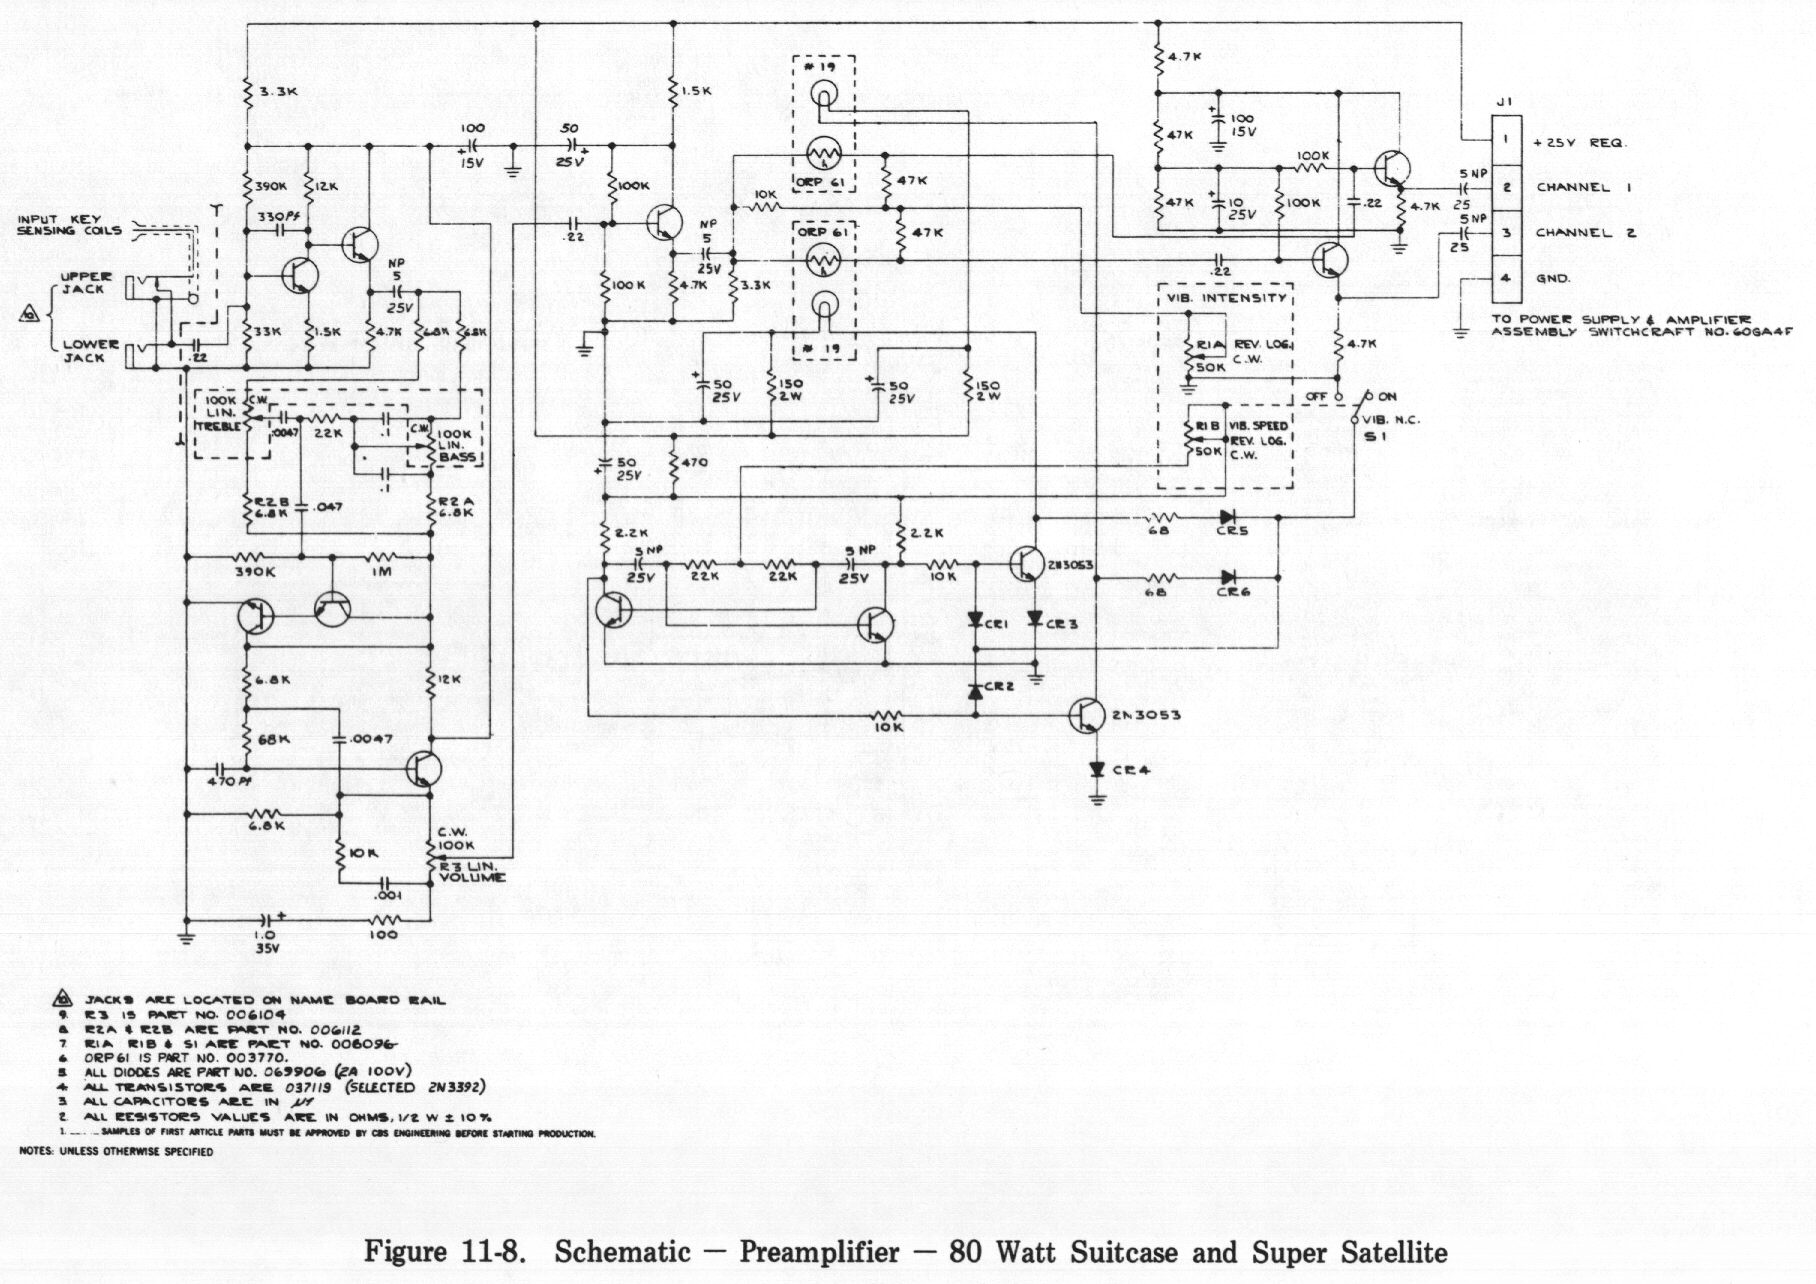 fig11 8 chapter 11 diagrams, schematics and pictorials preamp wiring diagram at eliteediting.co